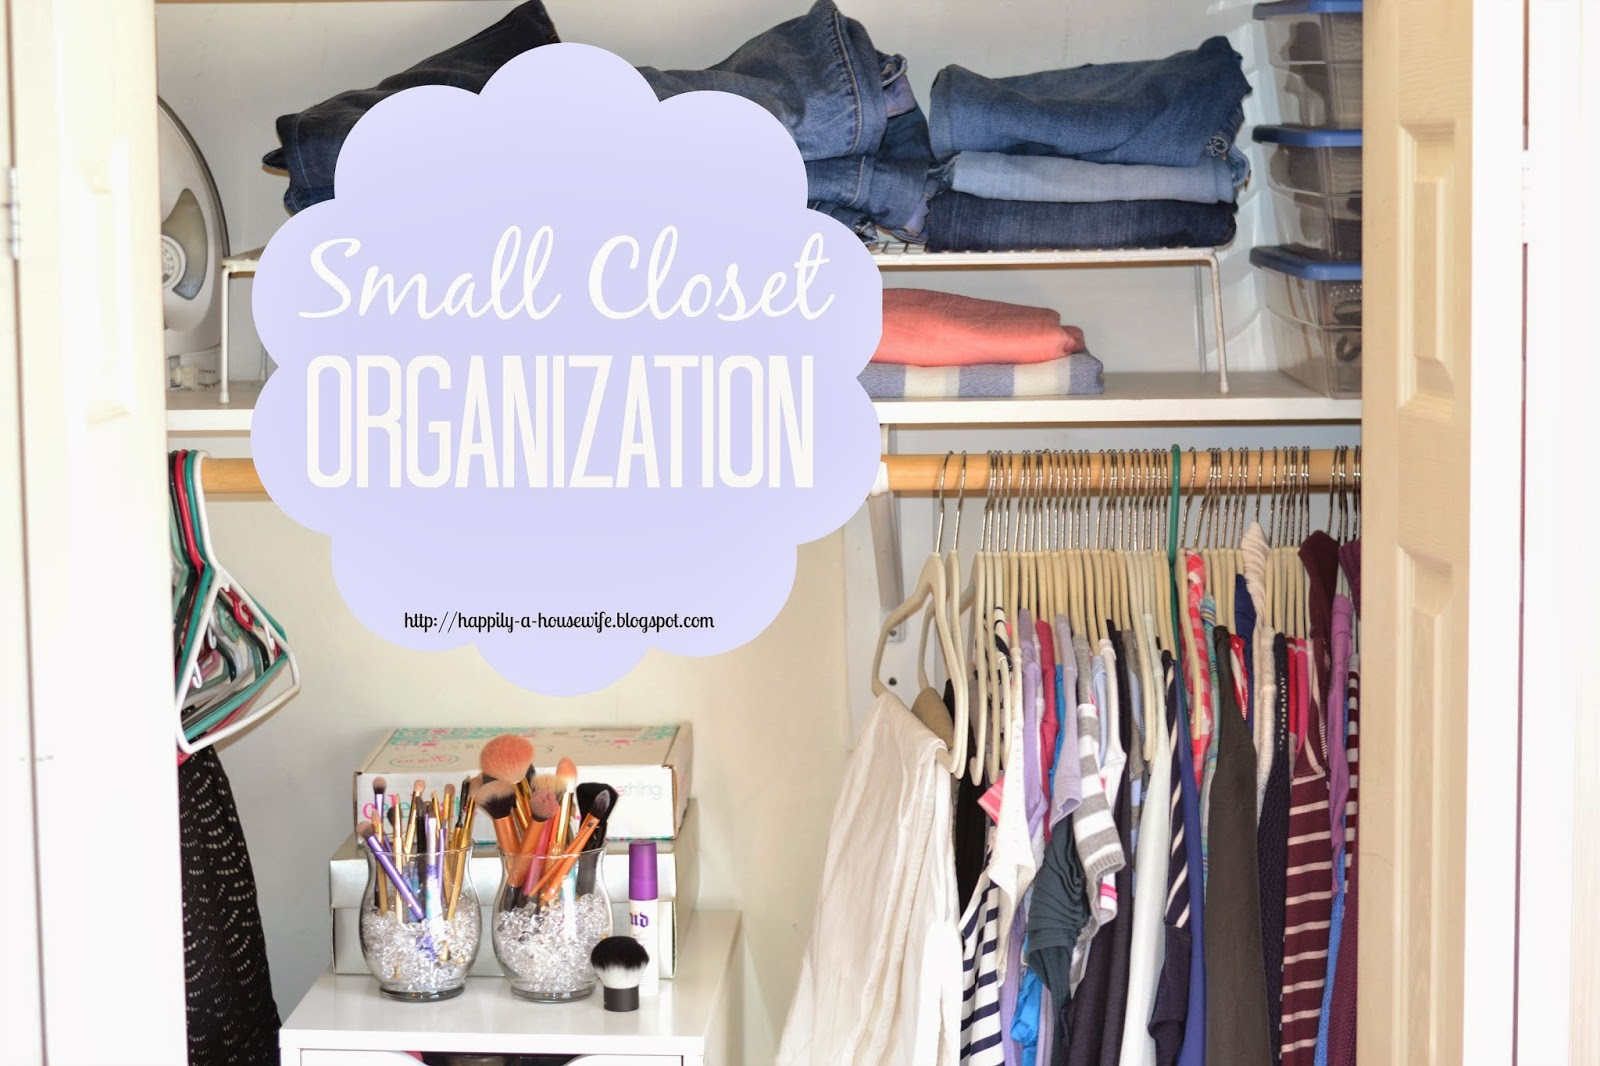 Happily A Housewife Small Closet Organization